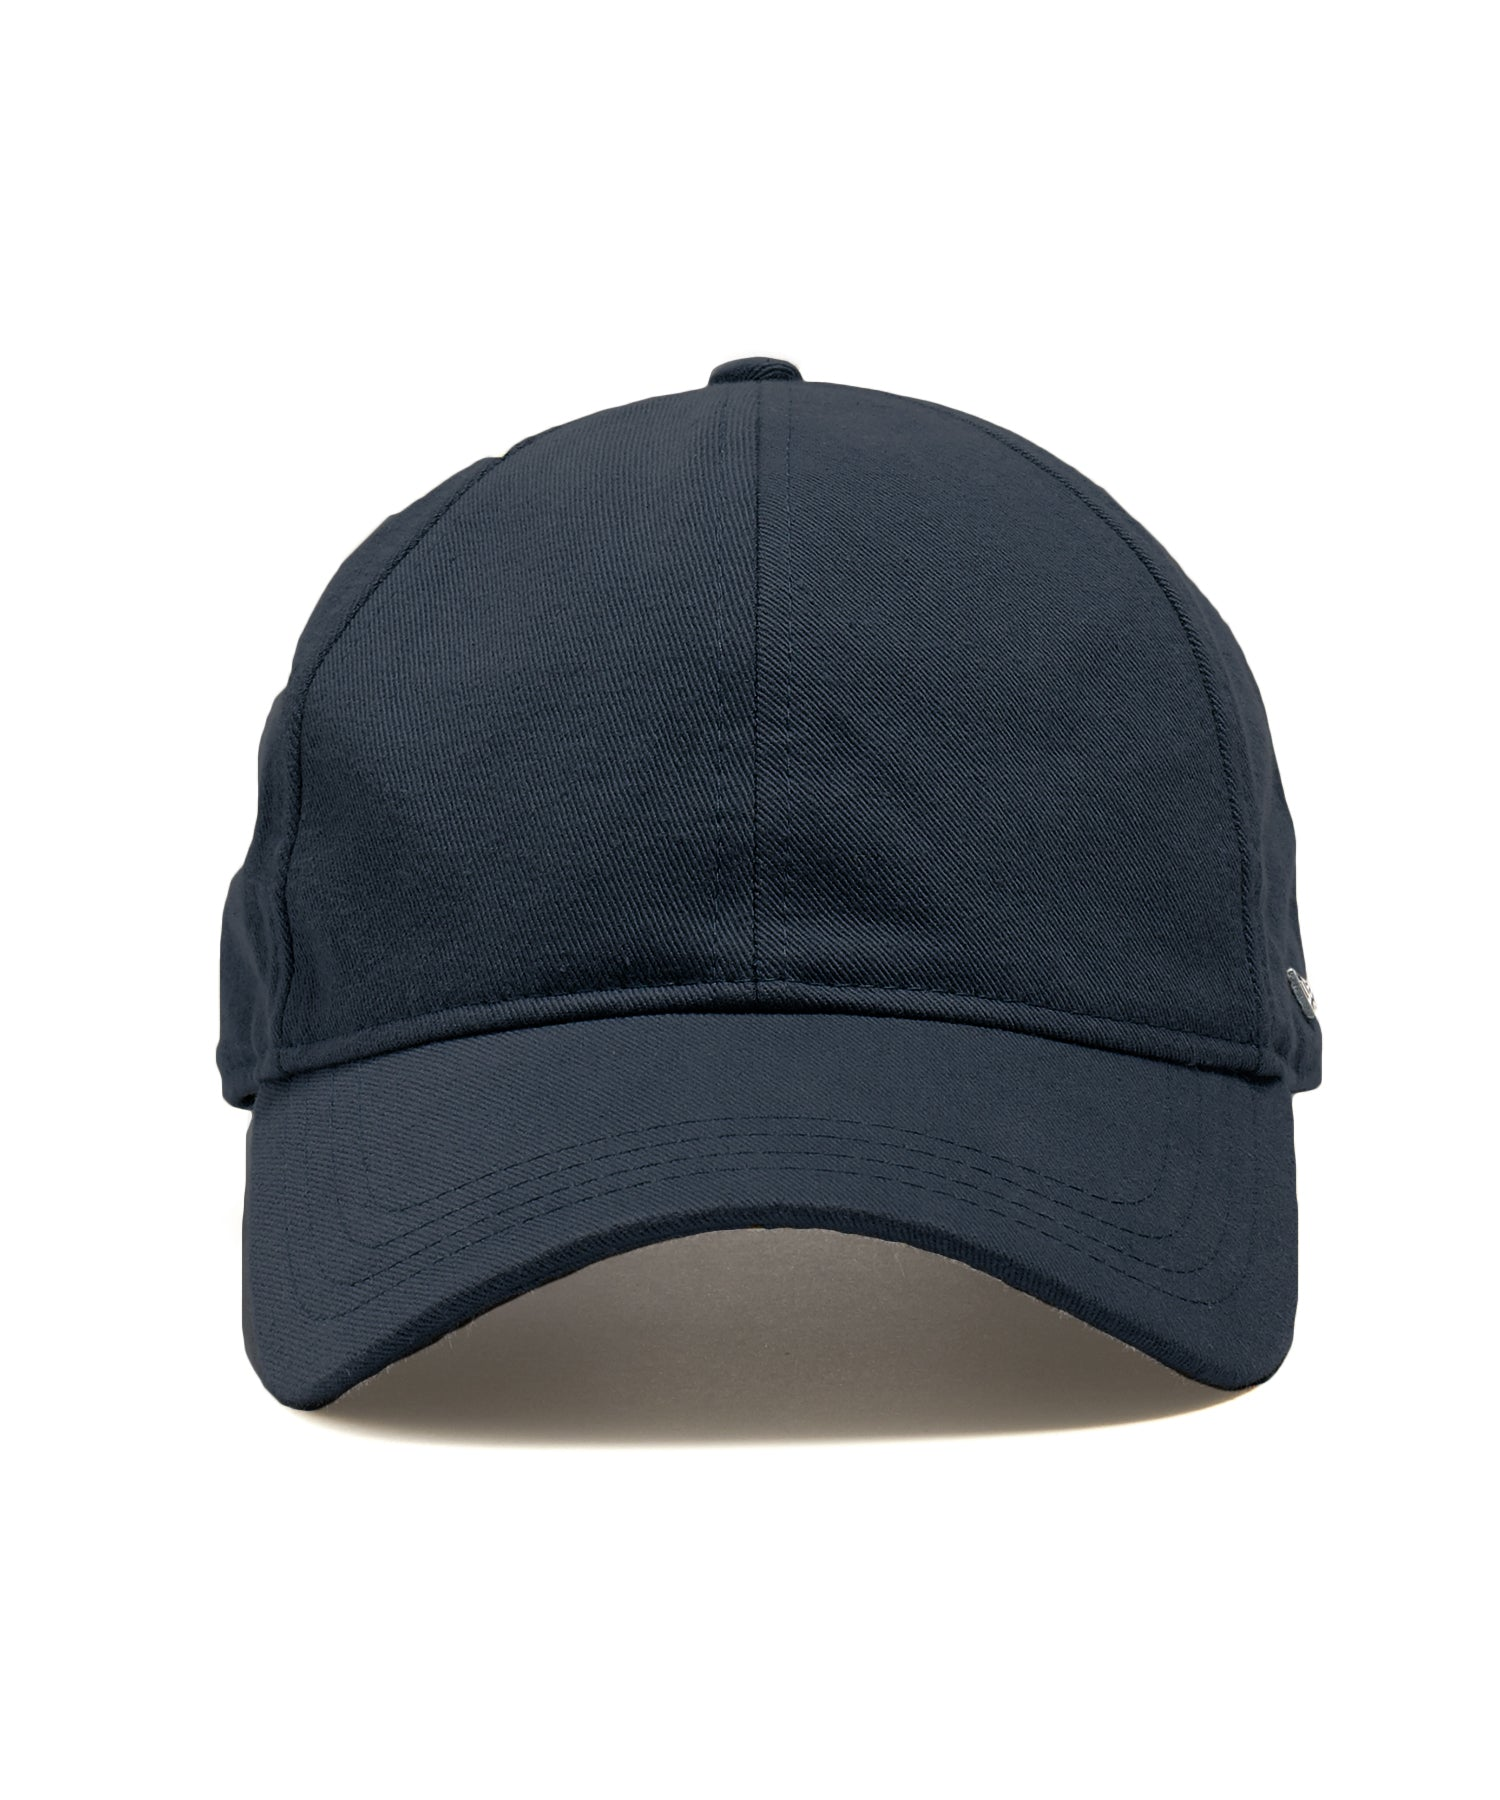 Todd Snyder + New Era Selvedge Chino Dad Hat in Navy